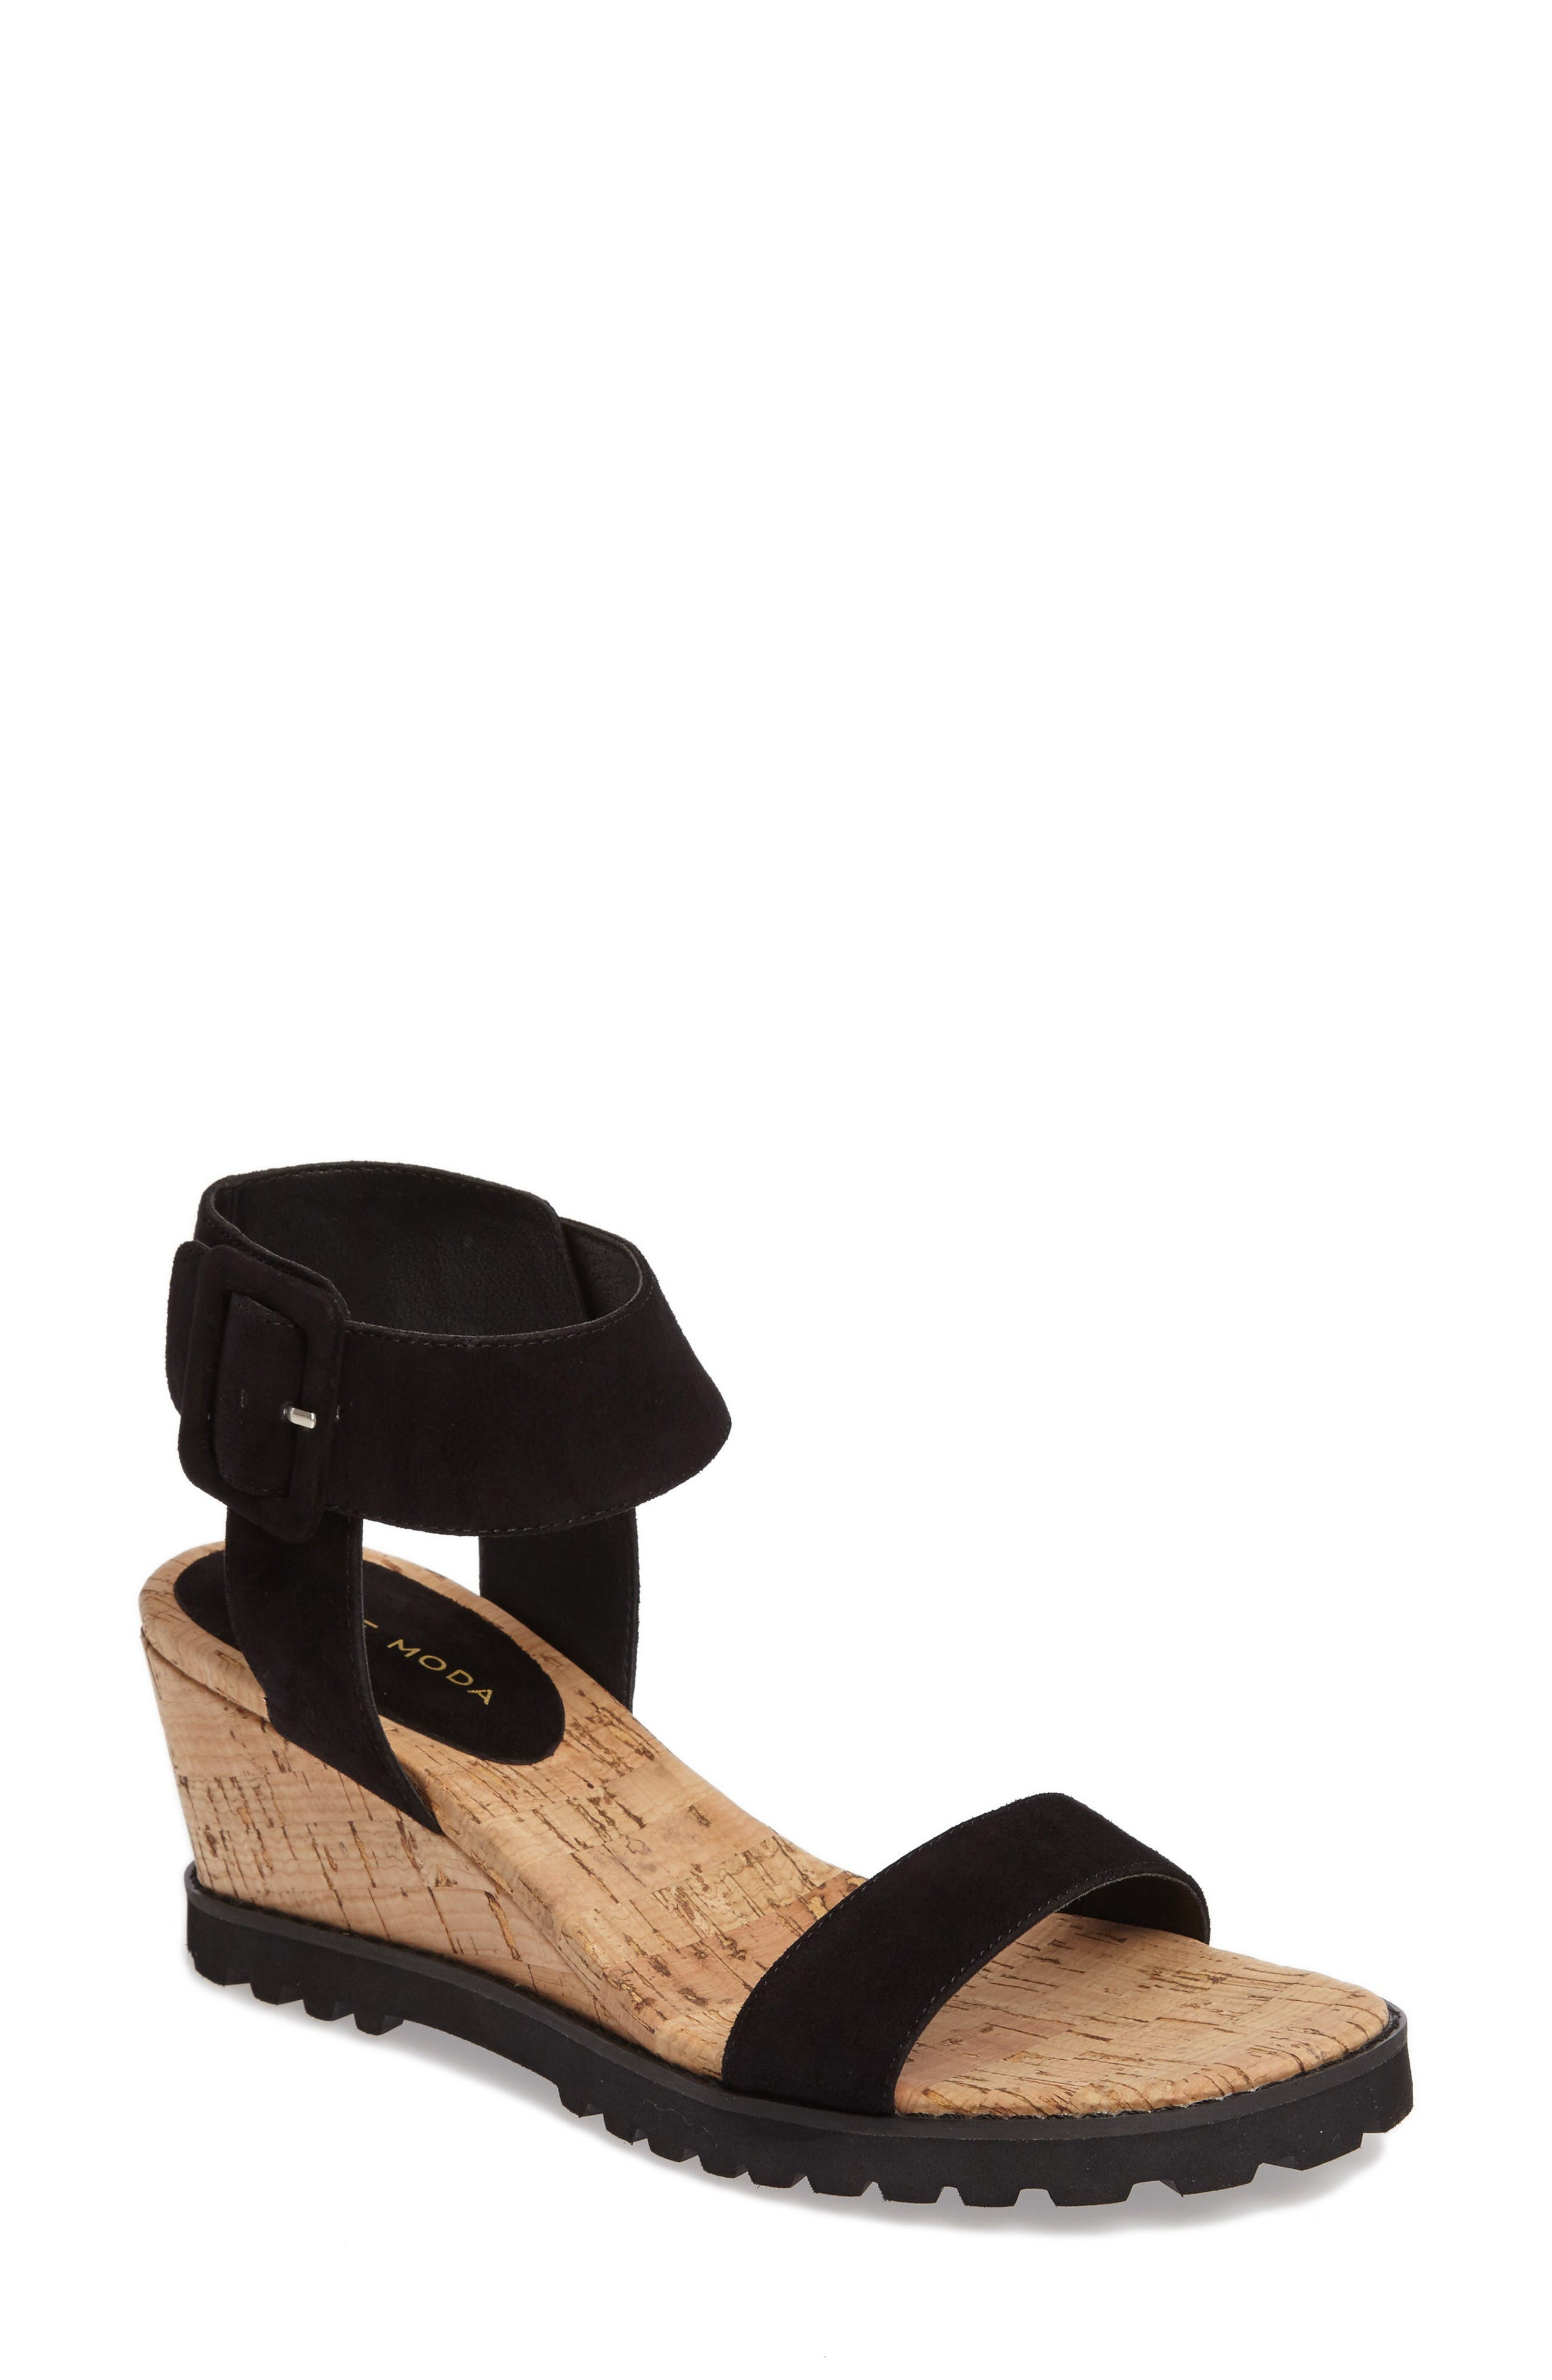 Rian Wedge Sandal,                             Main thumbnail 1, color,                             Black Leather